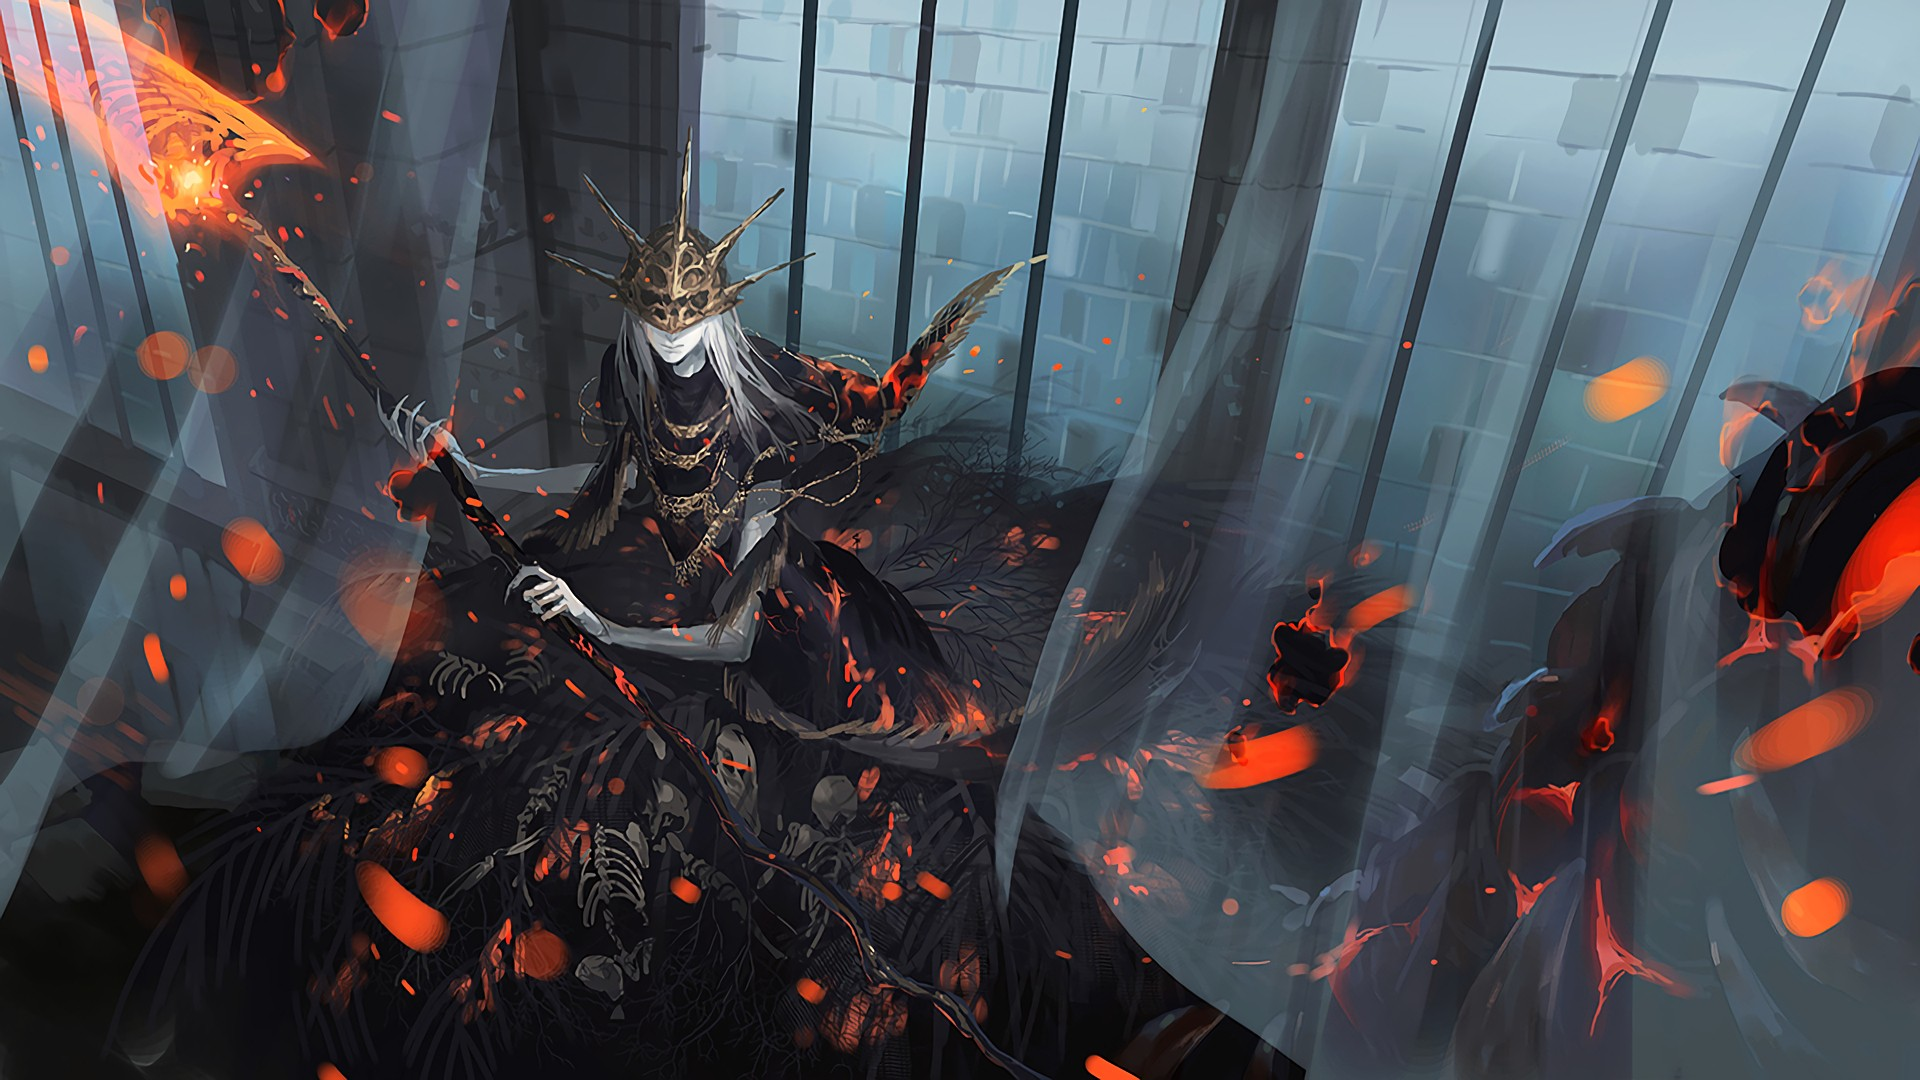 Dark Souls 3 Wallpaper 1920x1080 Download Free Awesome High